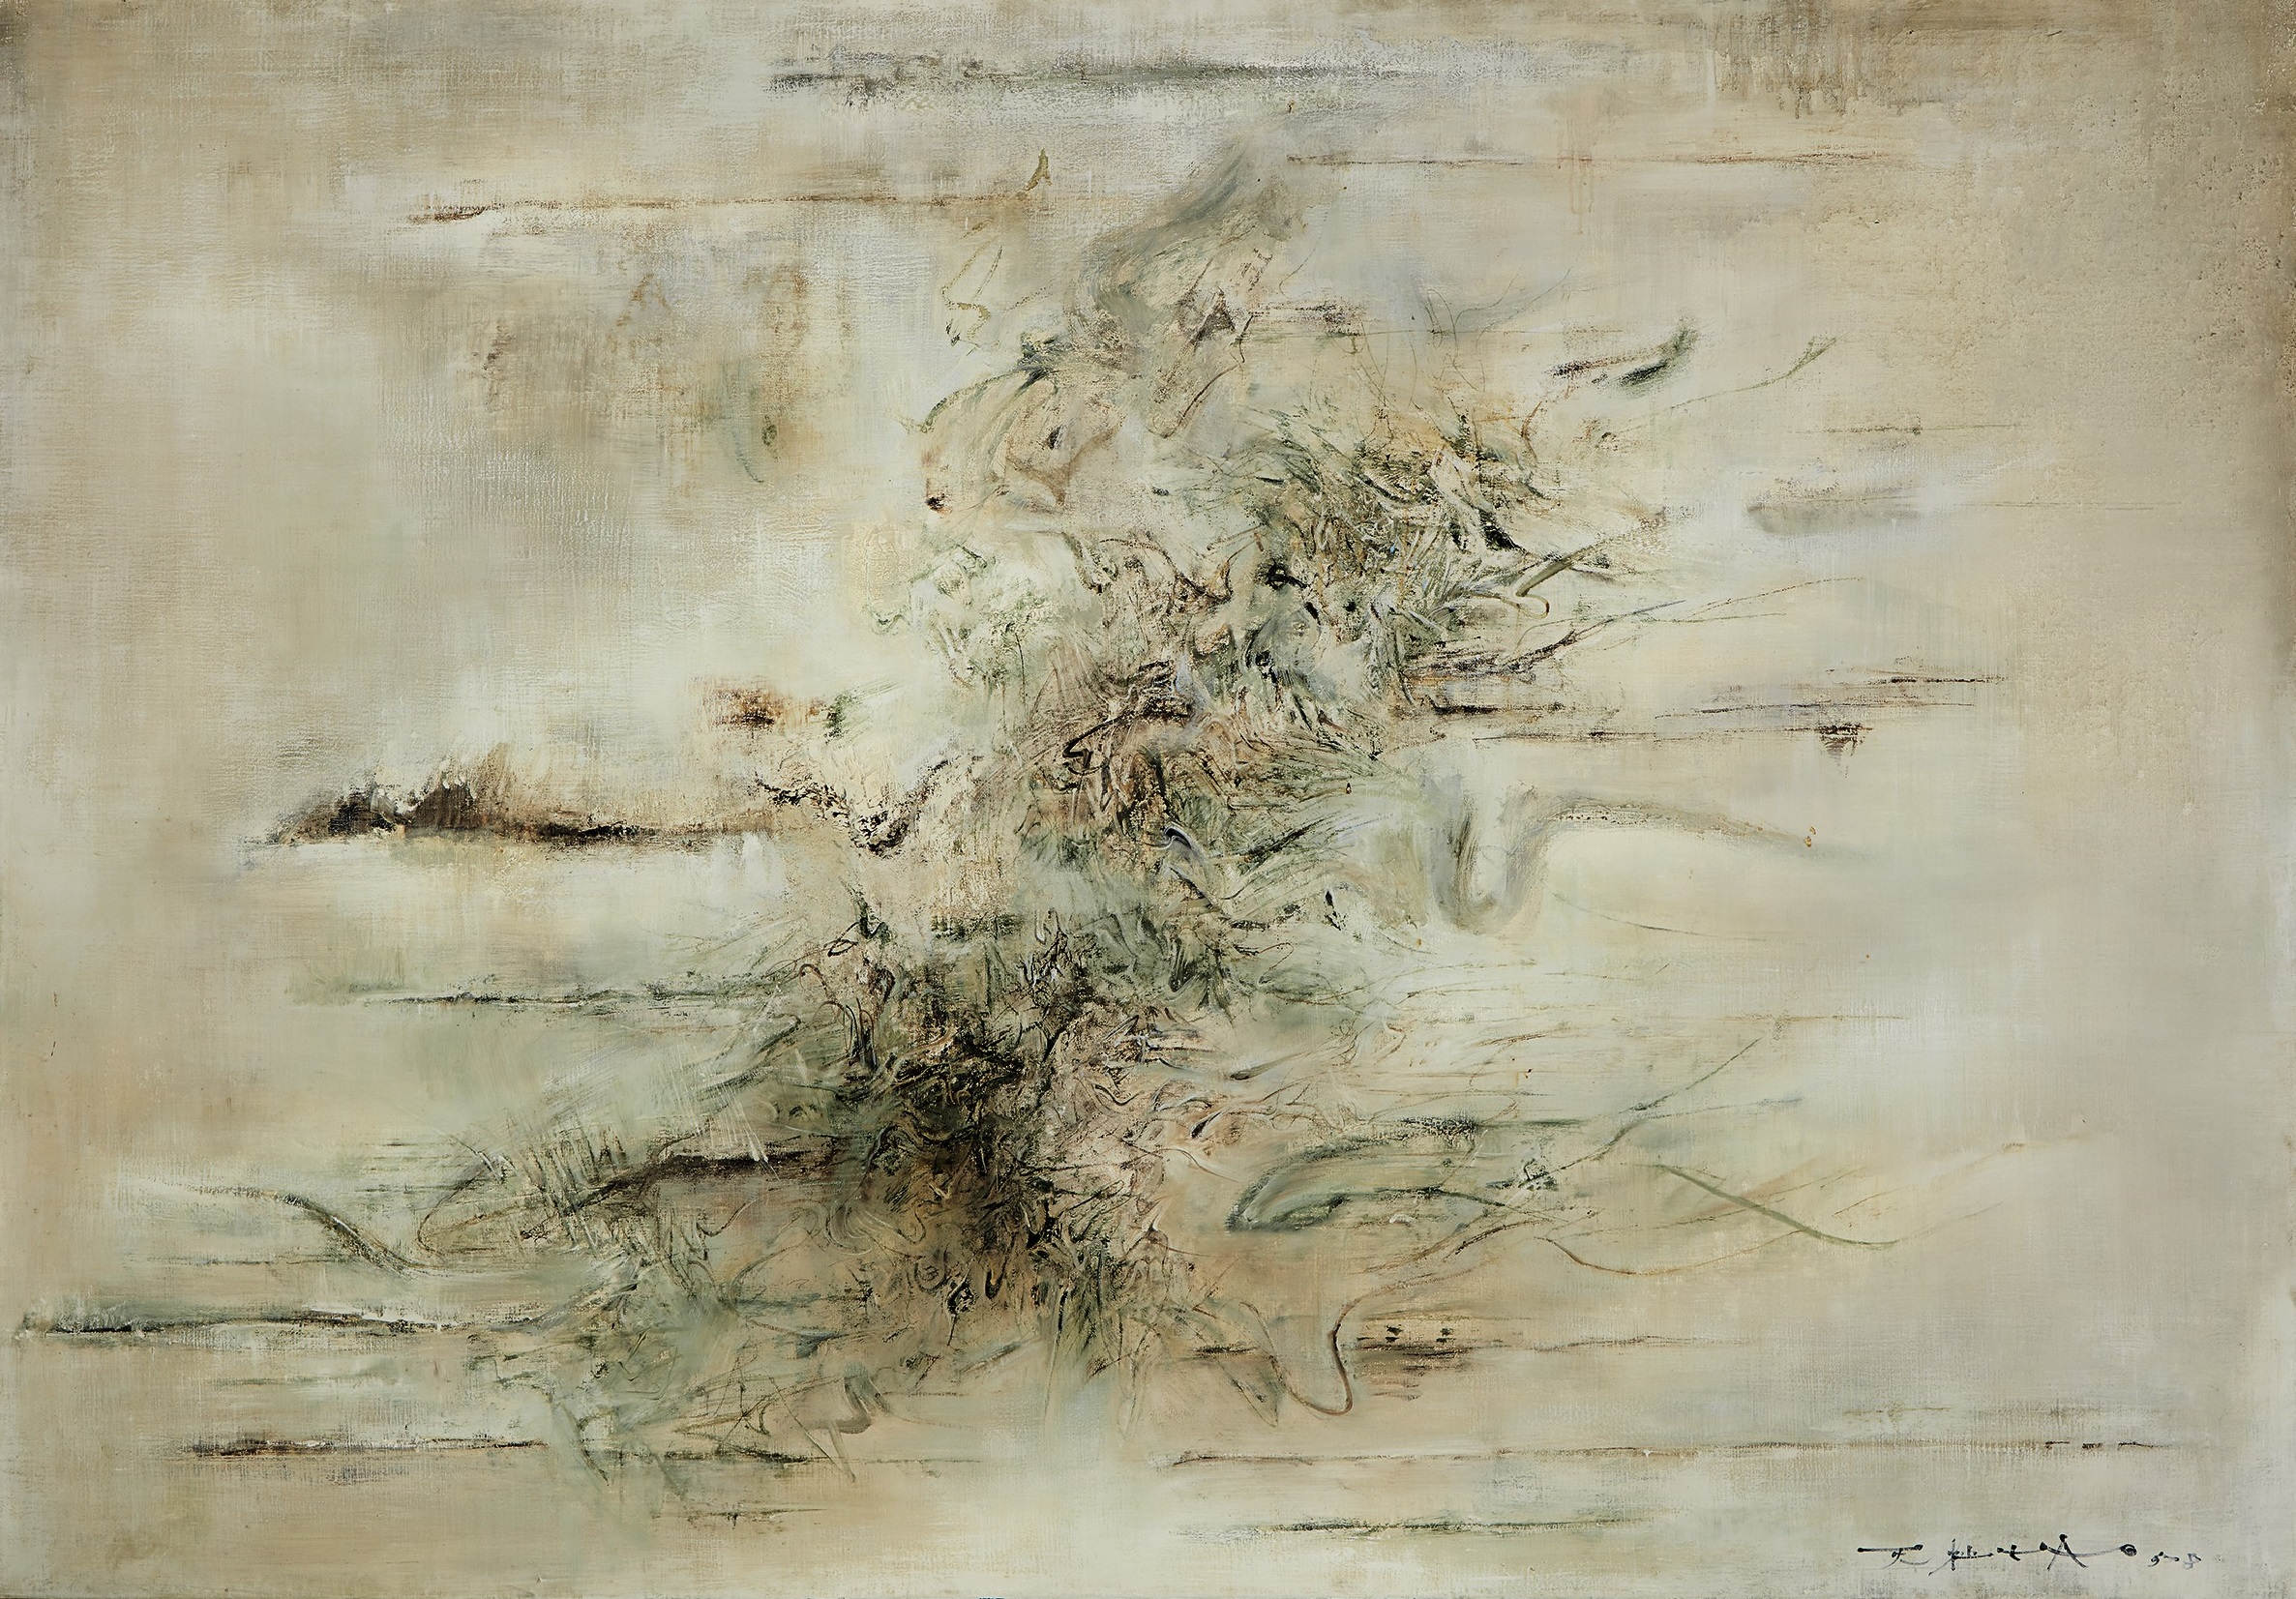 Guggenheim Museum to Sell Zao Wou-Ki Painting at Sotheby's Hong Kong in March